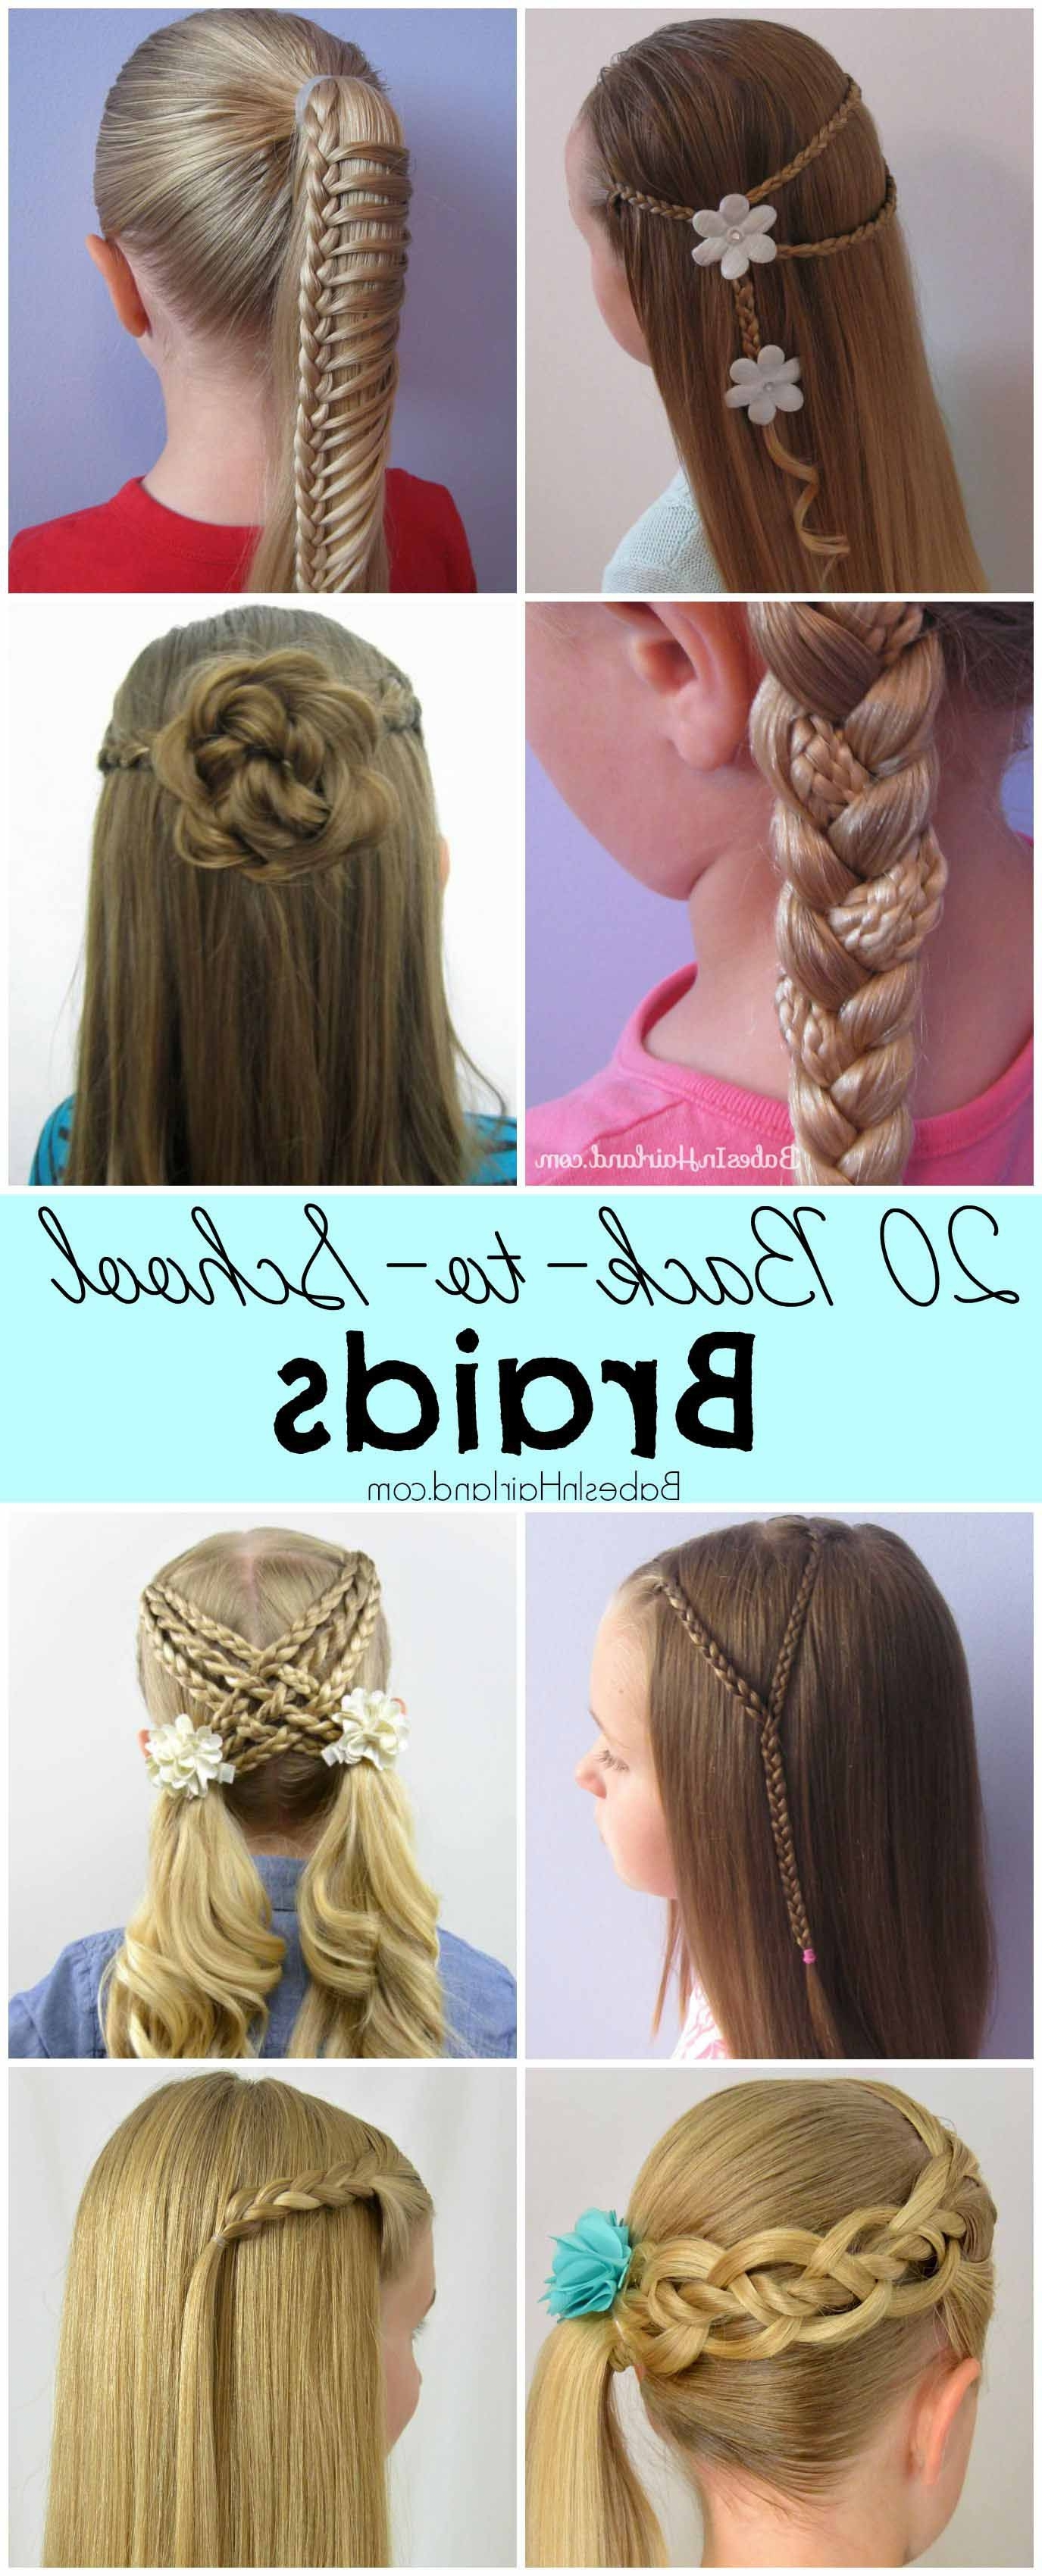 20 Back To School Braids – Babes In Hairland For Well Known Double Floating Braid Hairstyles (View 1 of 20)